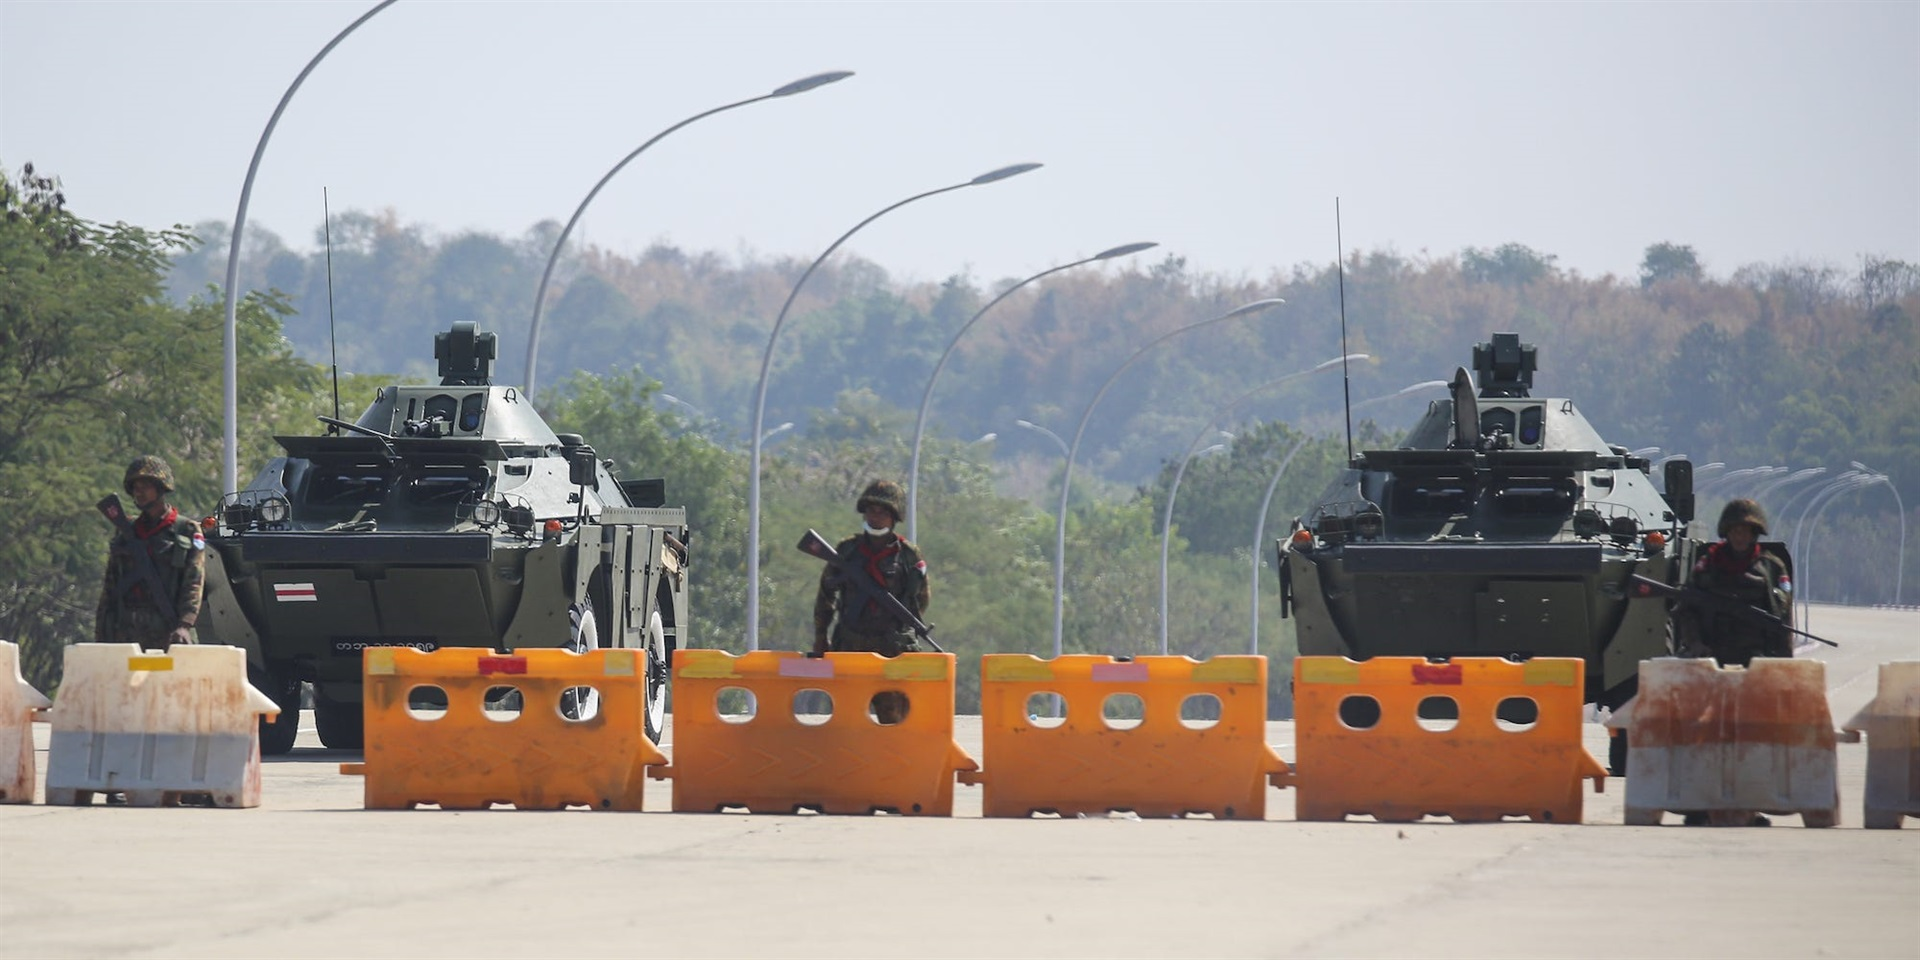 Troops with armored vehicles block the road near Parliament in Naypyidaw in Myanmar on Monday.